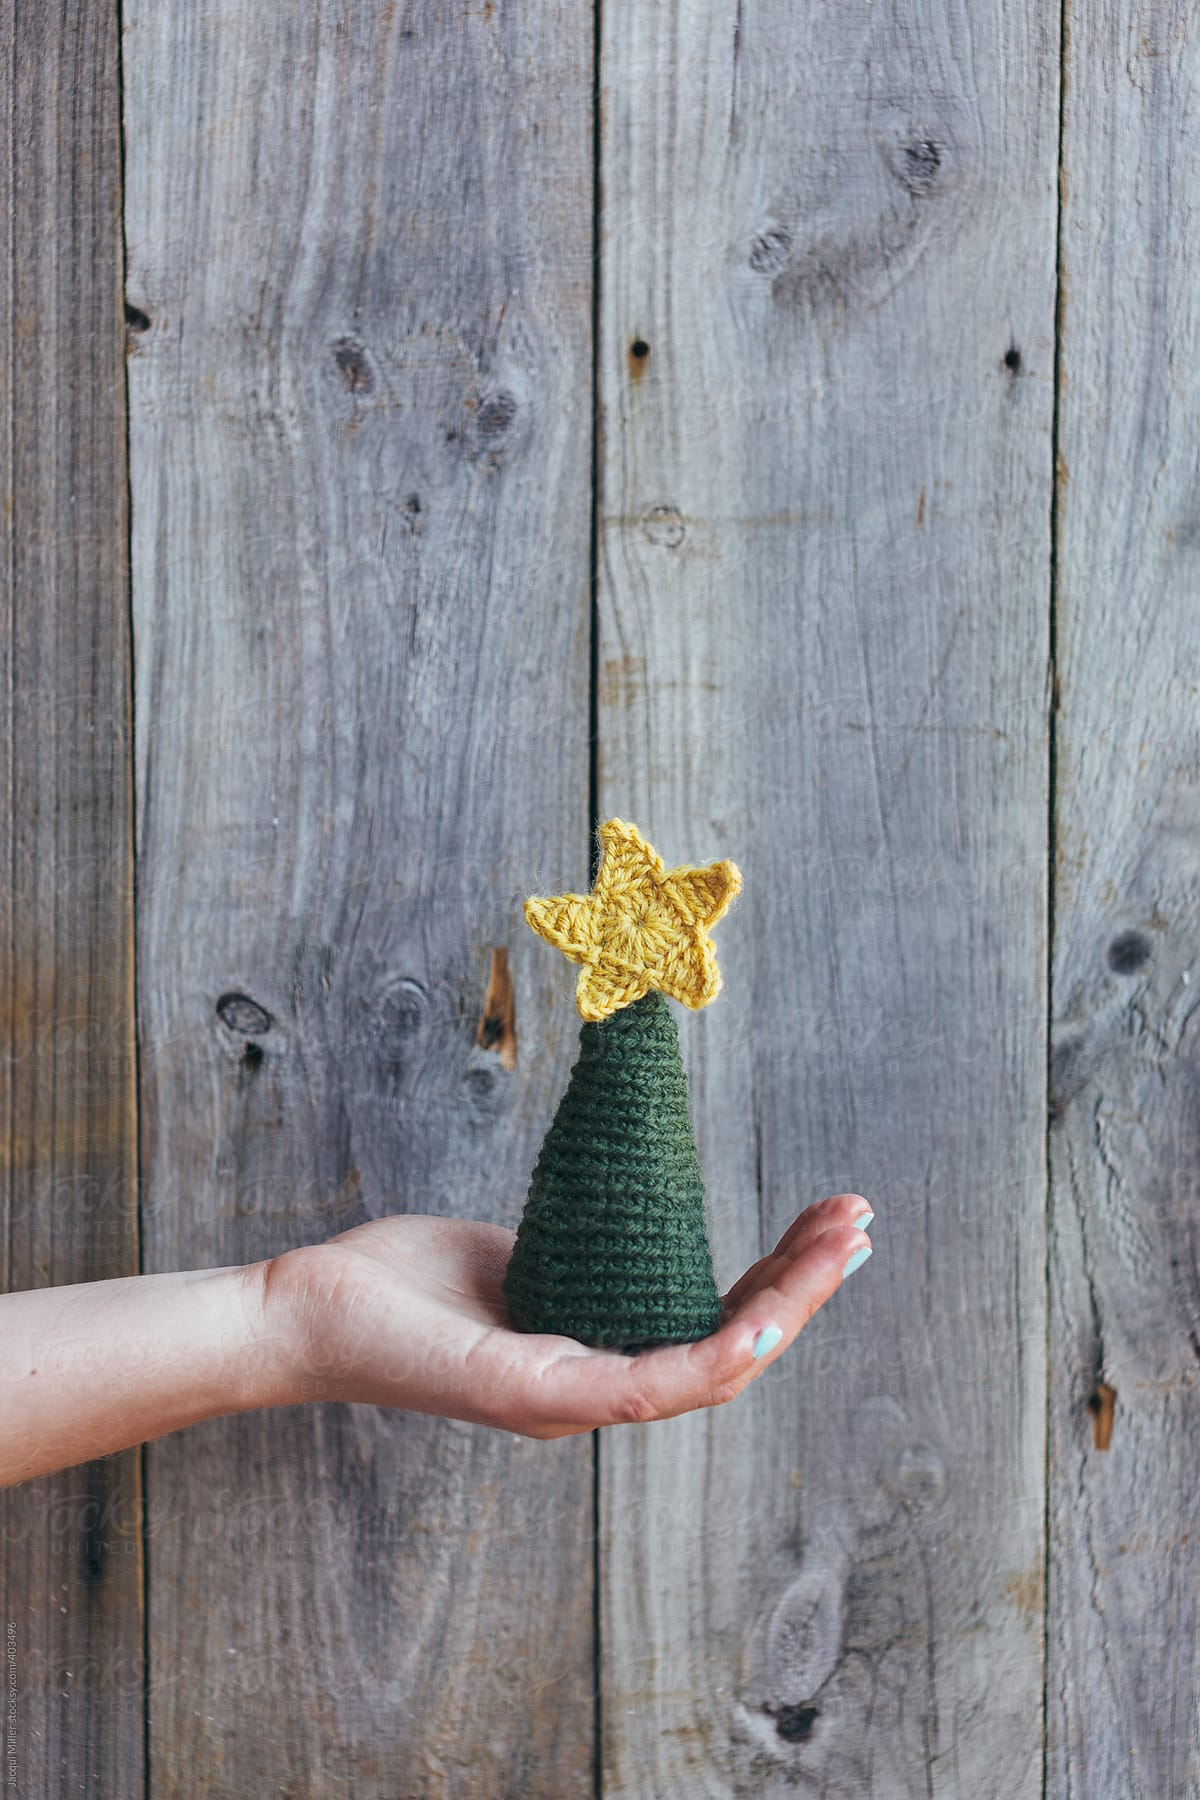 Girls Hand Holding A Crocheted Christmas Tree With Gold Star In Front Of Wood Fence By Jacqui Miller Christmas Xmas Stocksy United